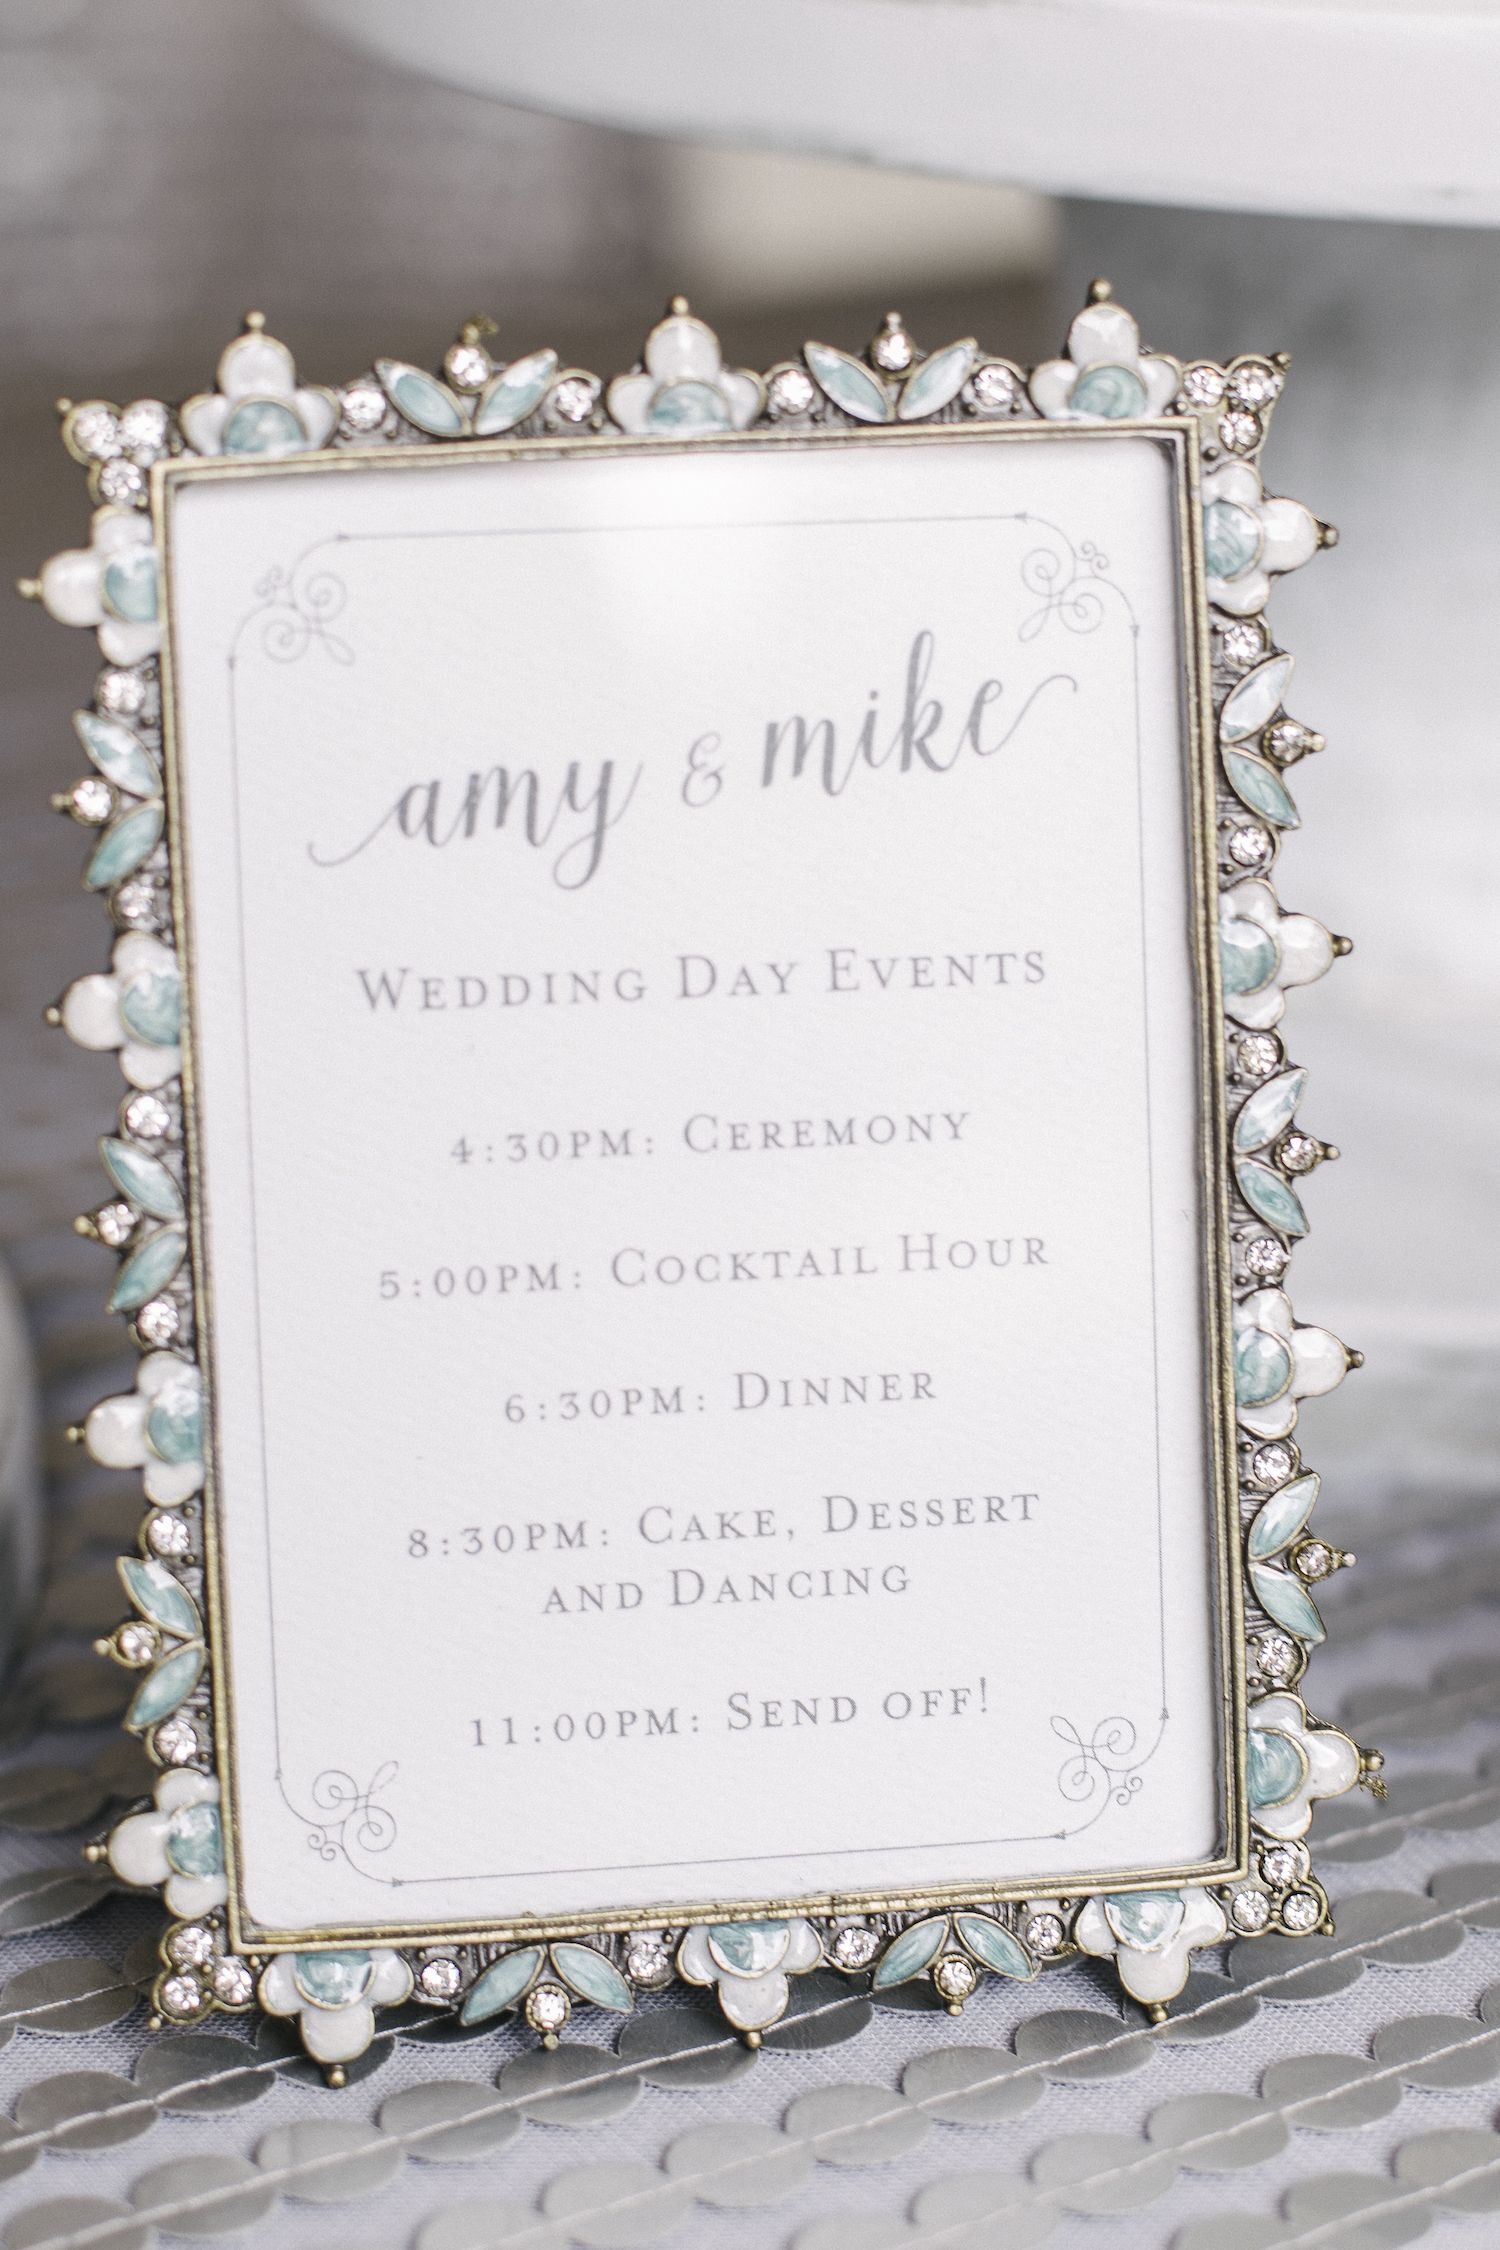 Sweet wedding timeline for guests to have an idea of the